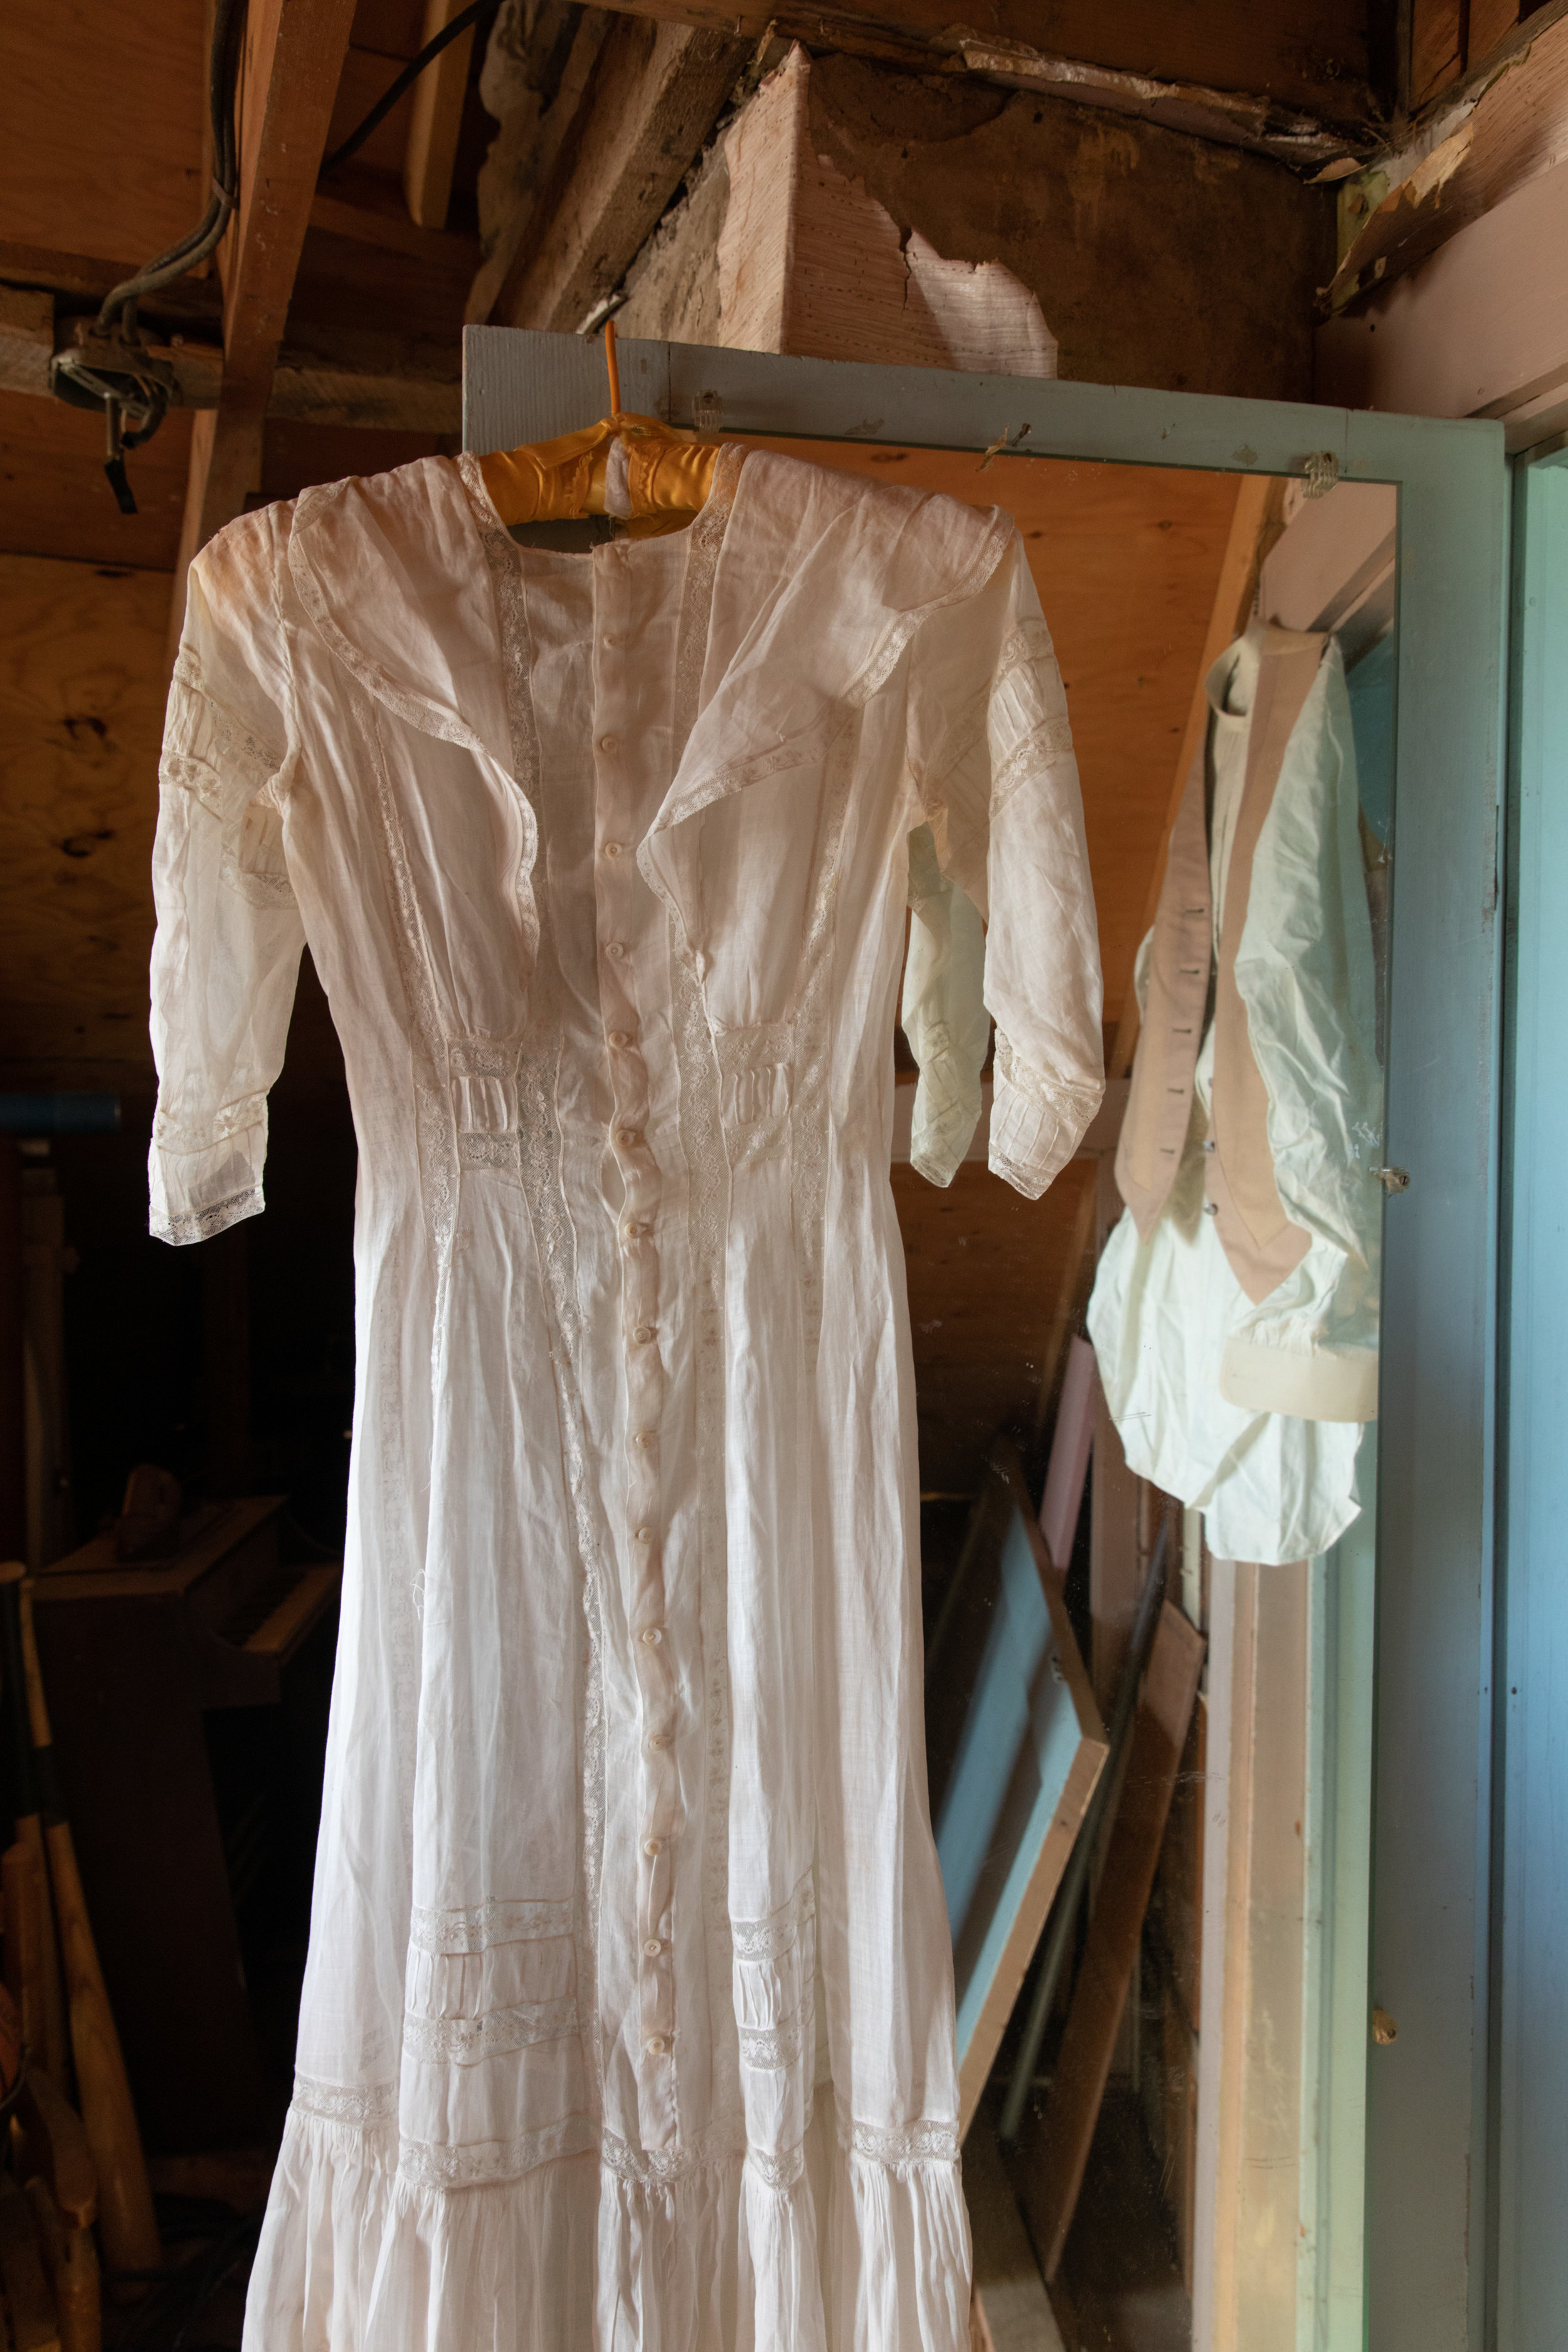 A dress and shirt in vest found among Great Grandma's belongings.